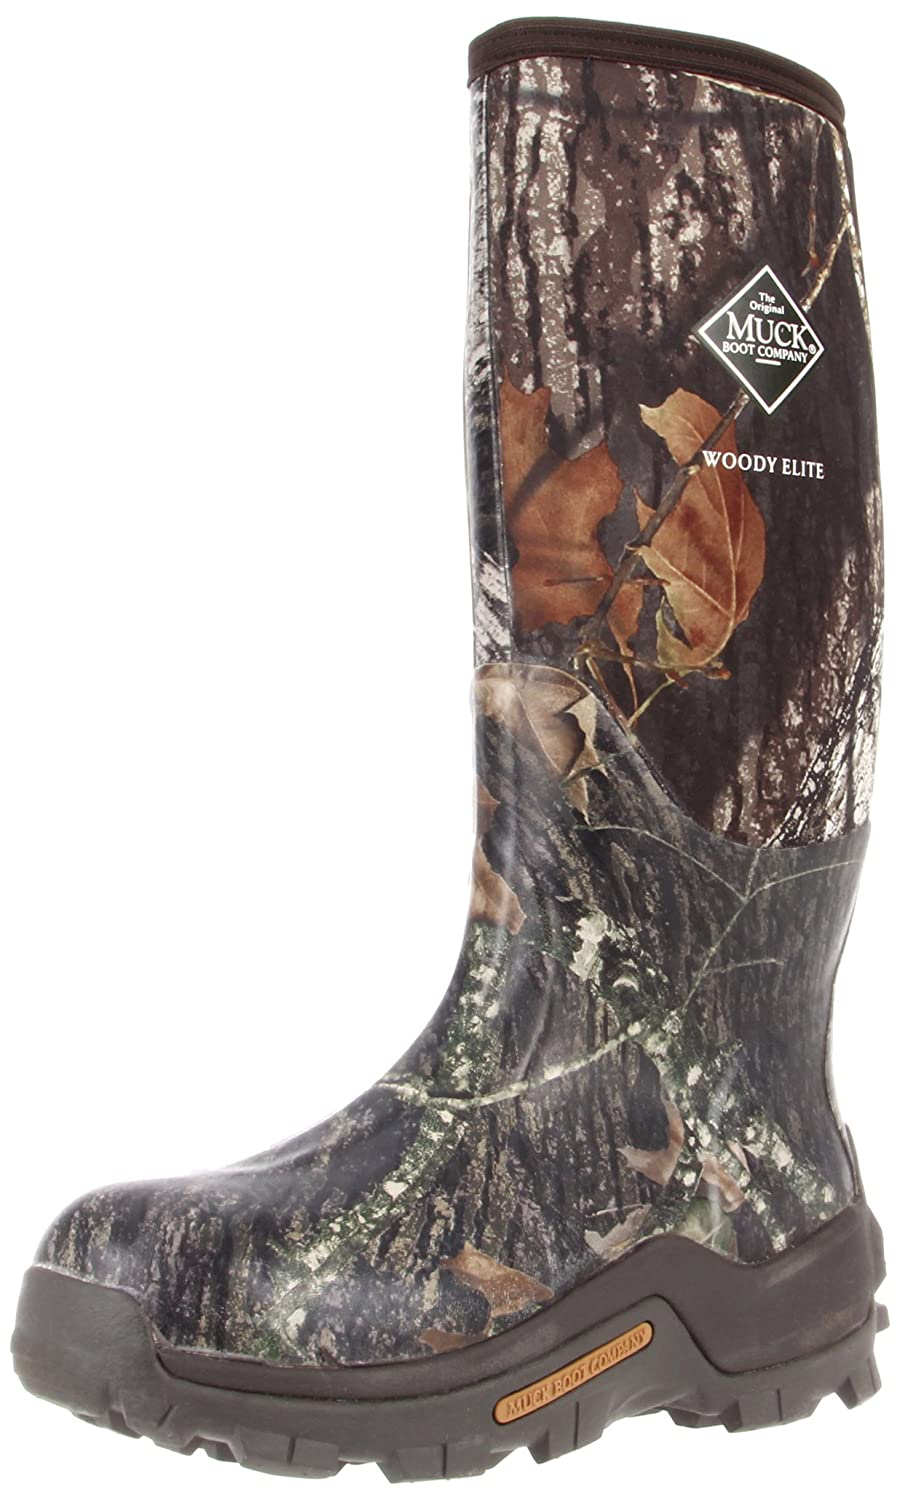 The Original MuckBoots Adult Woody Elite Boot